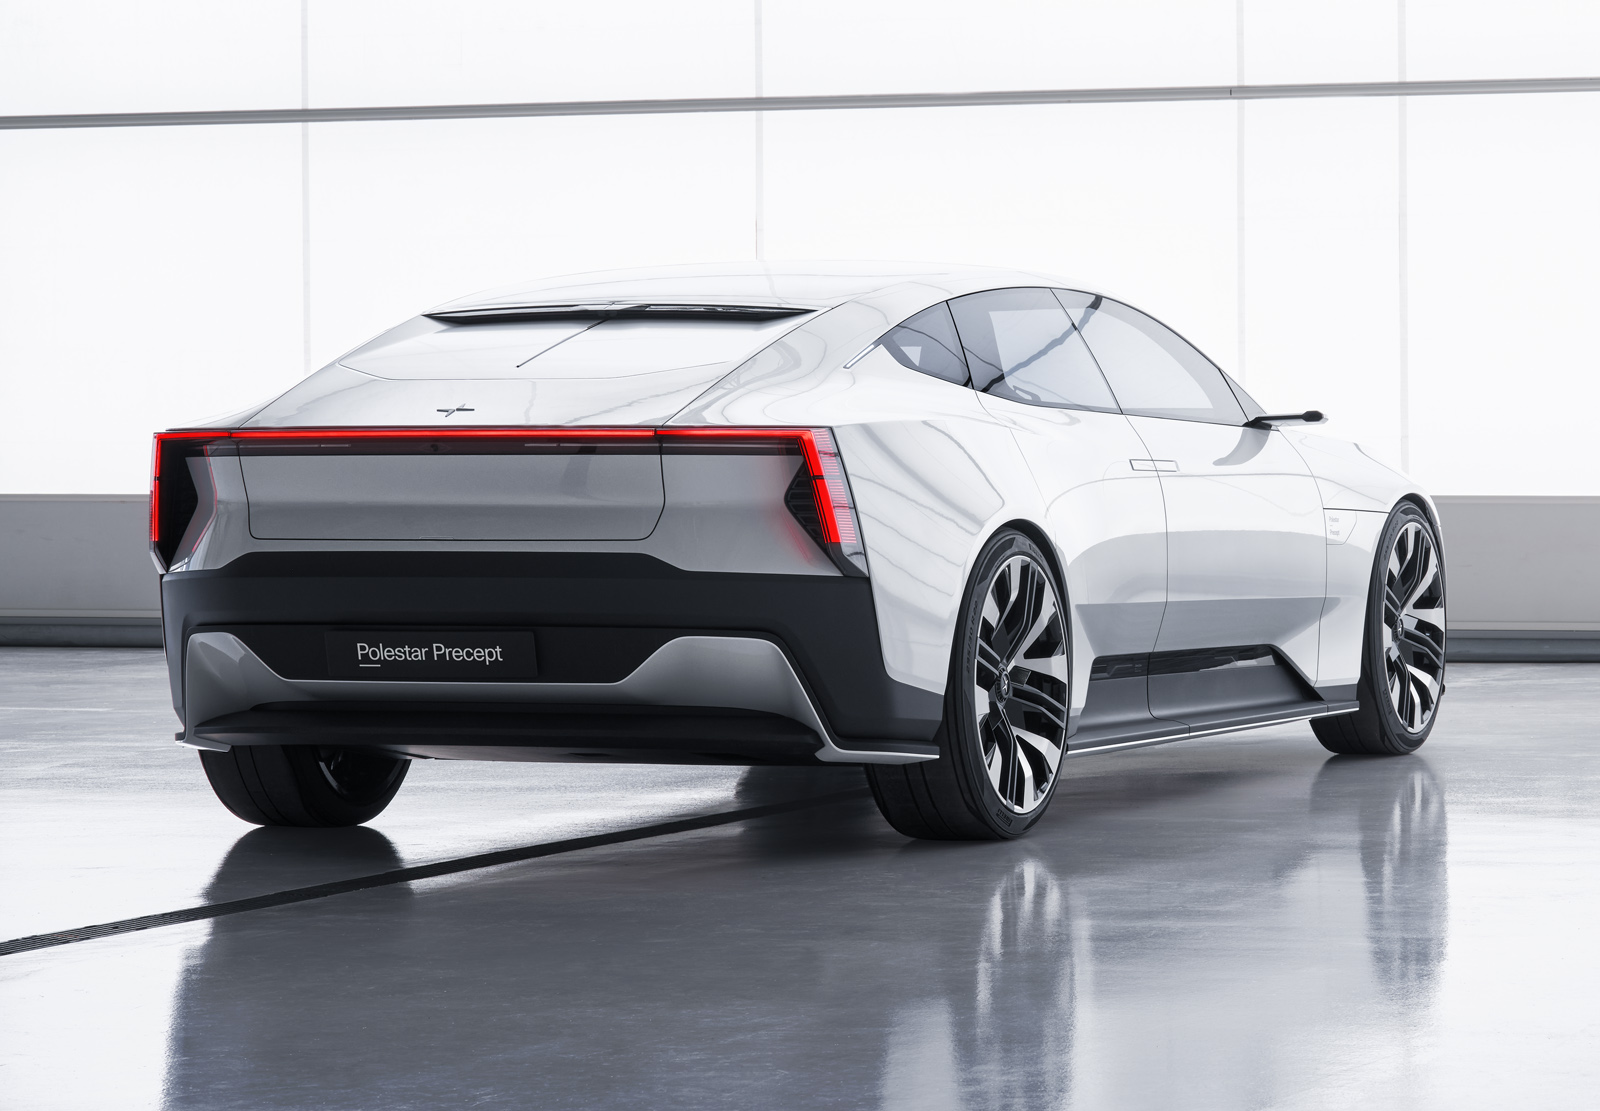 Polestar Precept: new images released of sleek EV saloon | Autocar